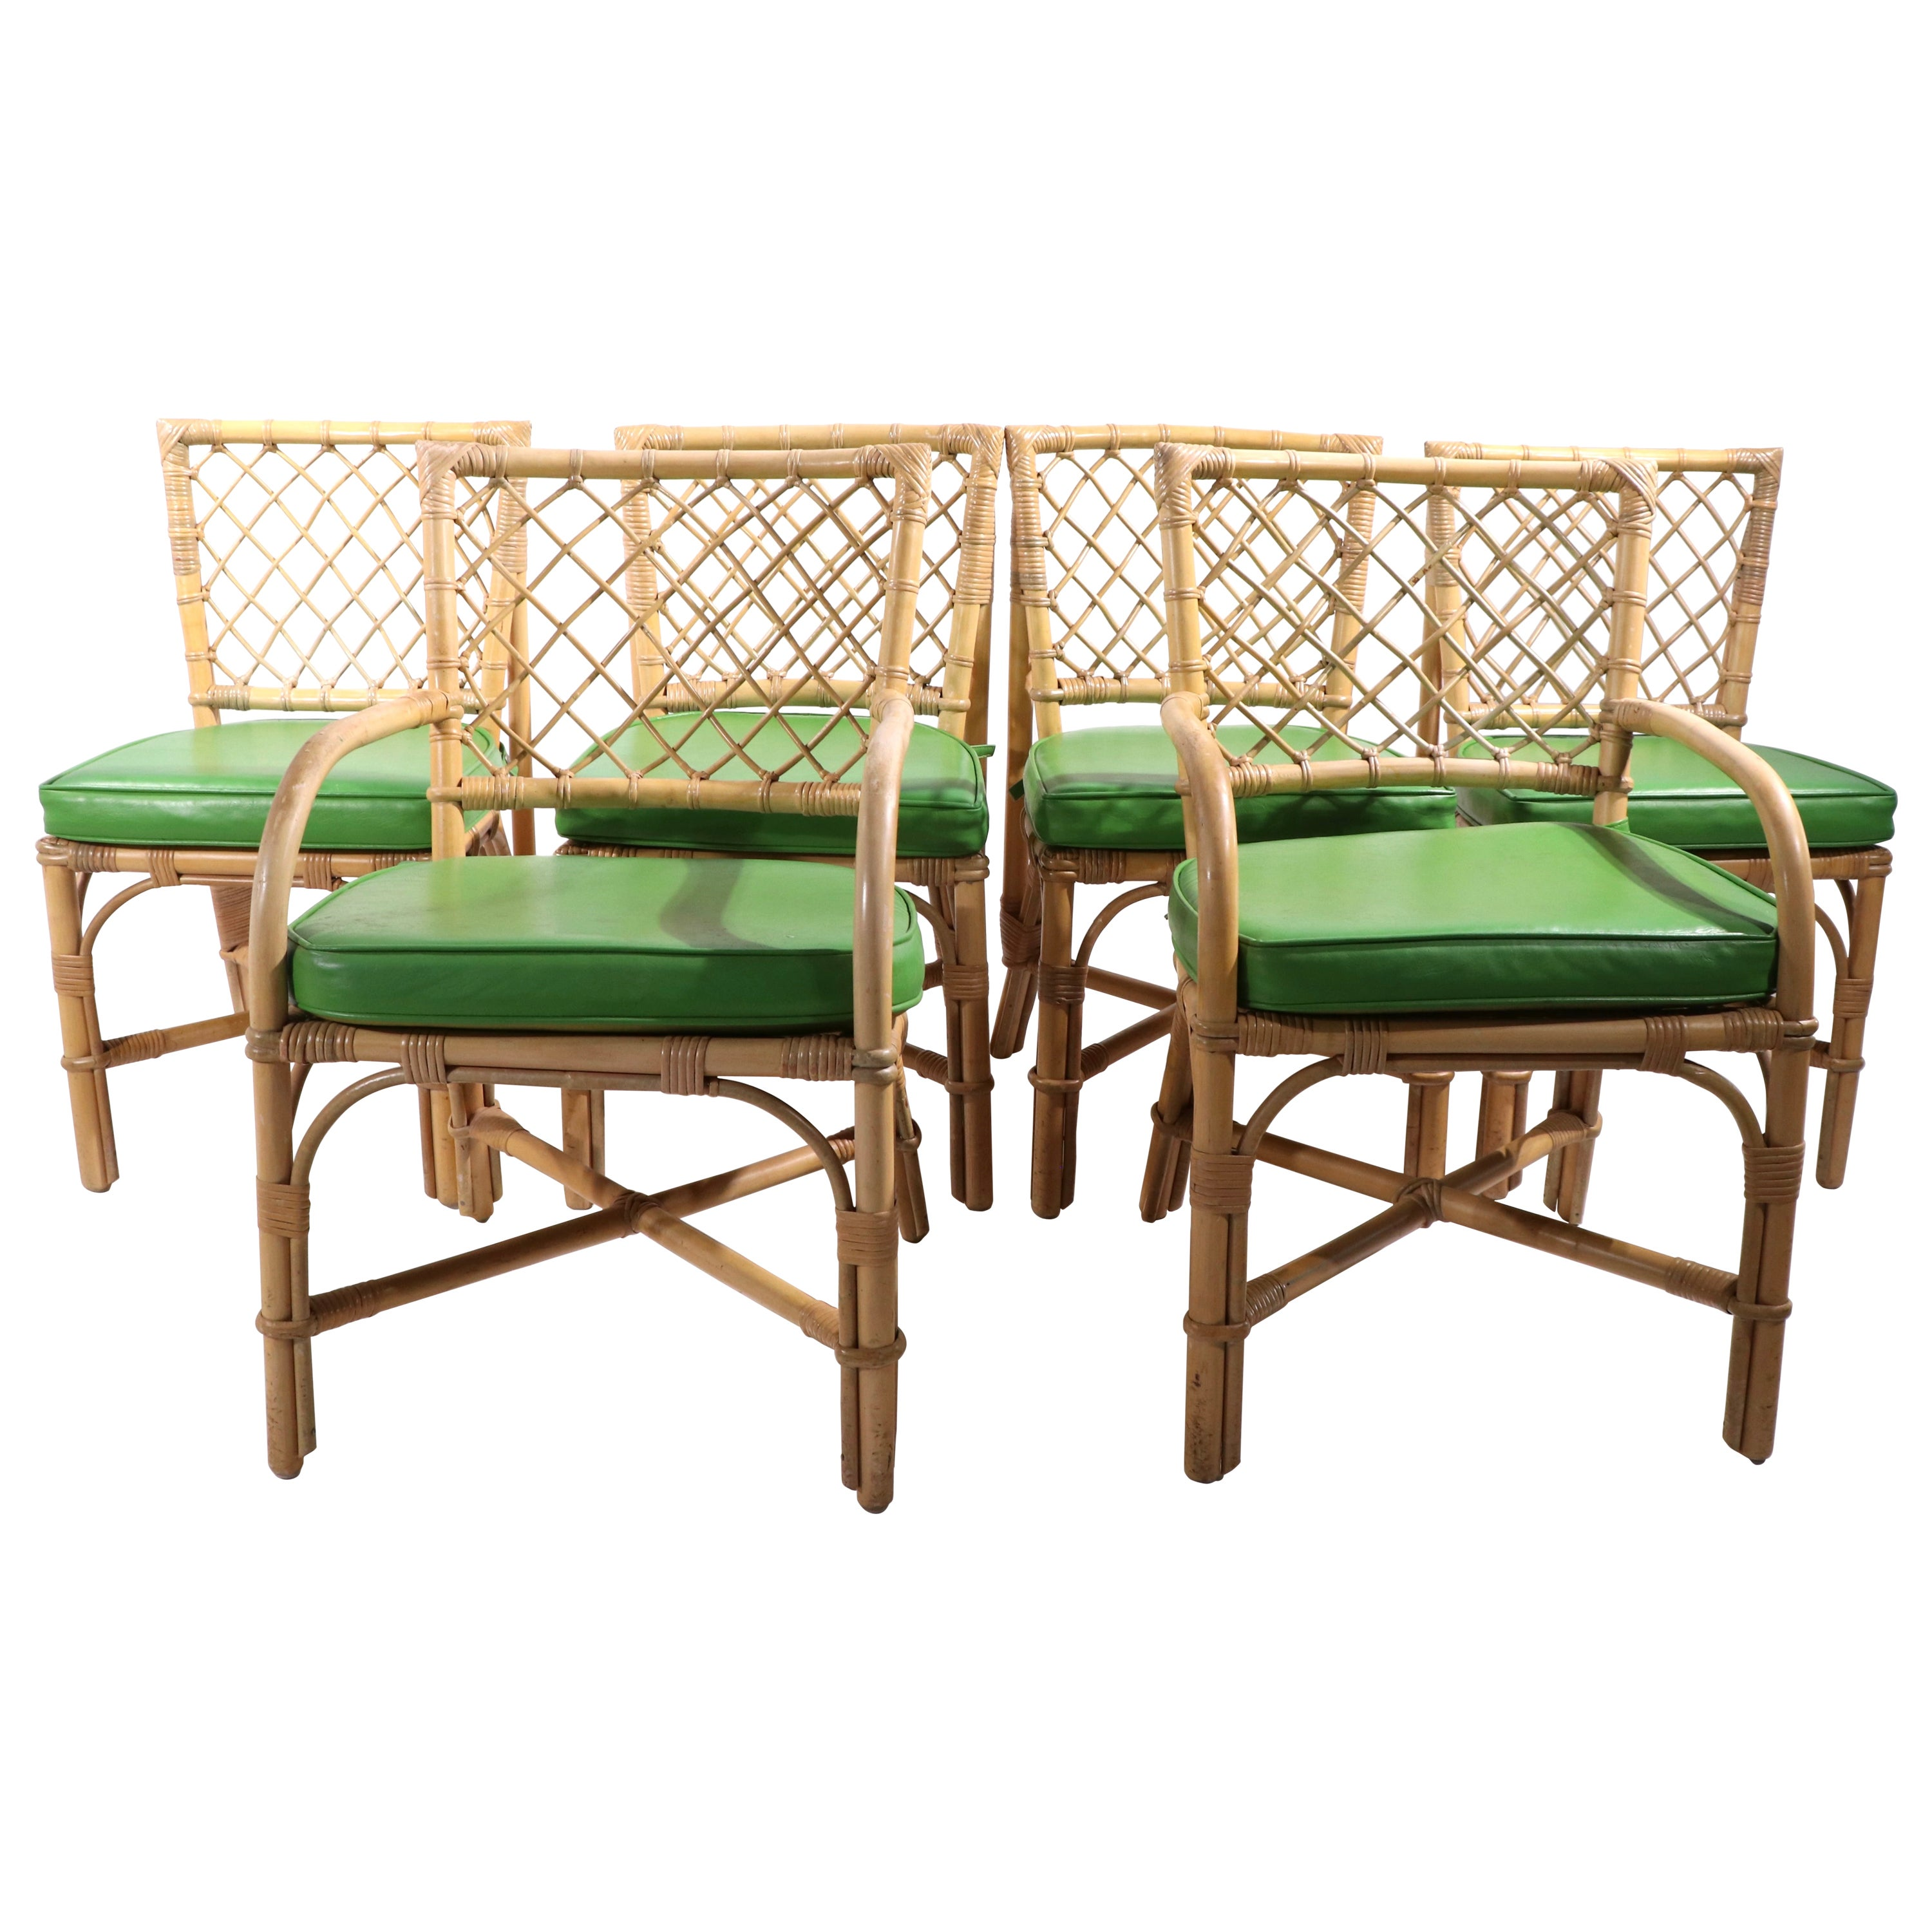 Set of 6 Bamboo Dining Chairs Att. to McGuire